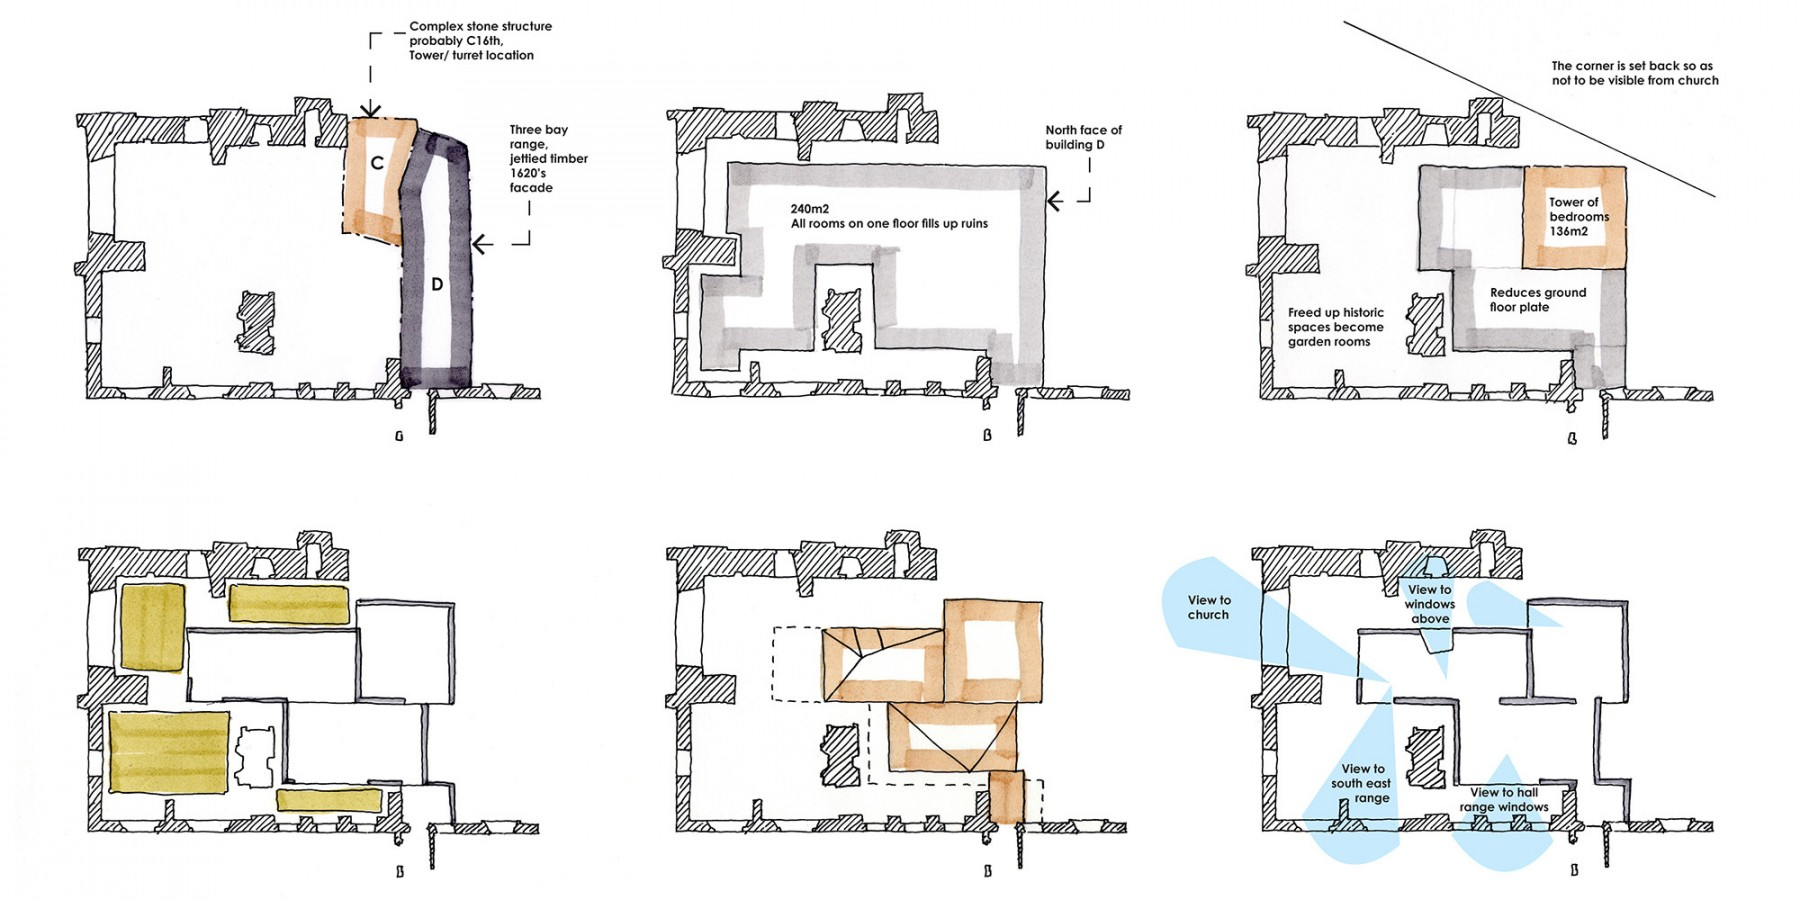 Astley-Castle-competition-accomodation-Nuneaton-Warwickshire-Landmark-trust-English-Heritage-short-list-Jamie-Fobert-architects-floor-plan